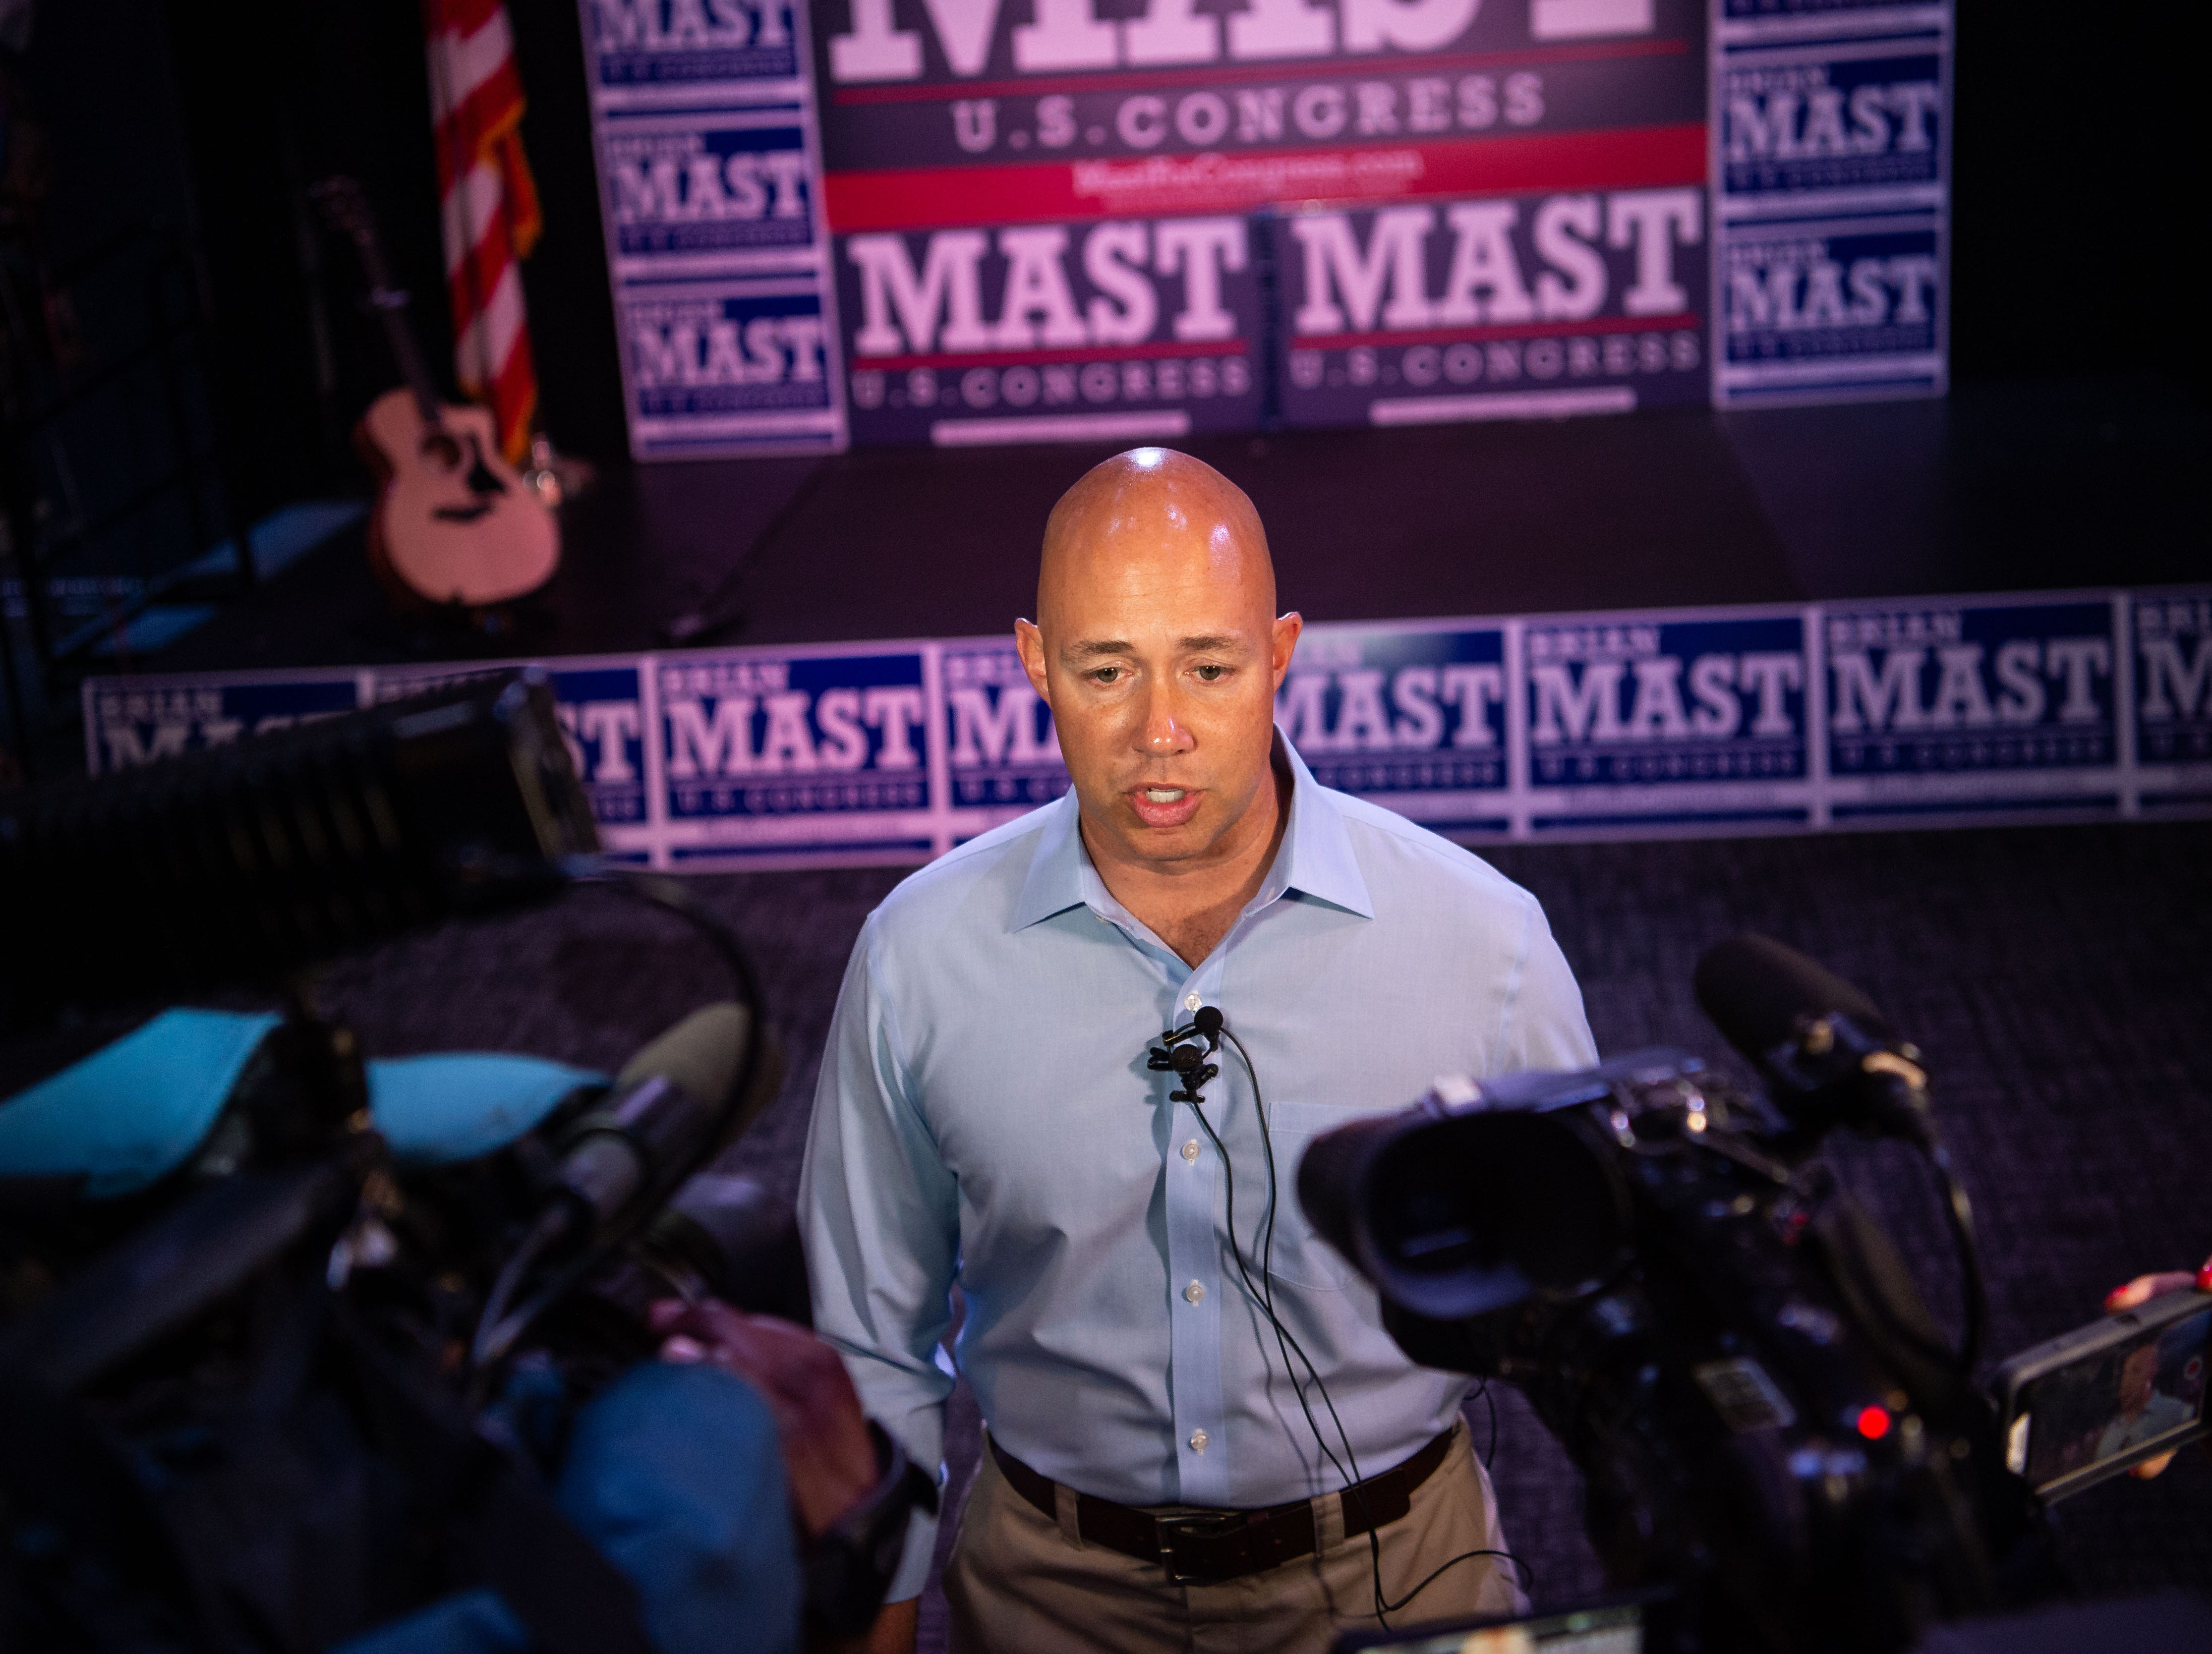 U.S. Rep. Brian Mast speaks with news media Tuesday, Aug. 28, 2018, at his primary election night party at Flagler Place in downtown Stuart, after the announcement of his securing the Republican Party's nomination to continue in his Dist.18 senate seat.